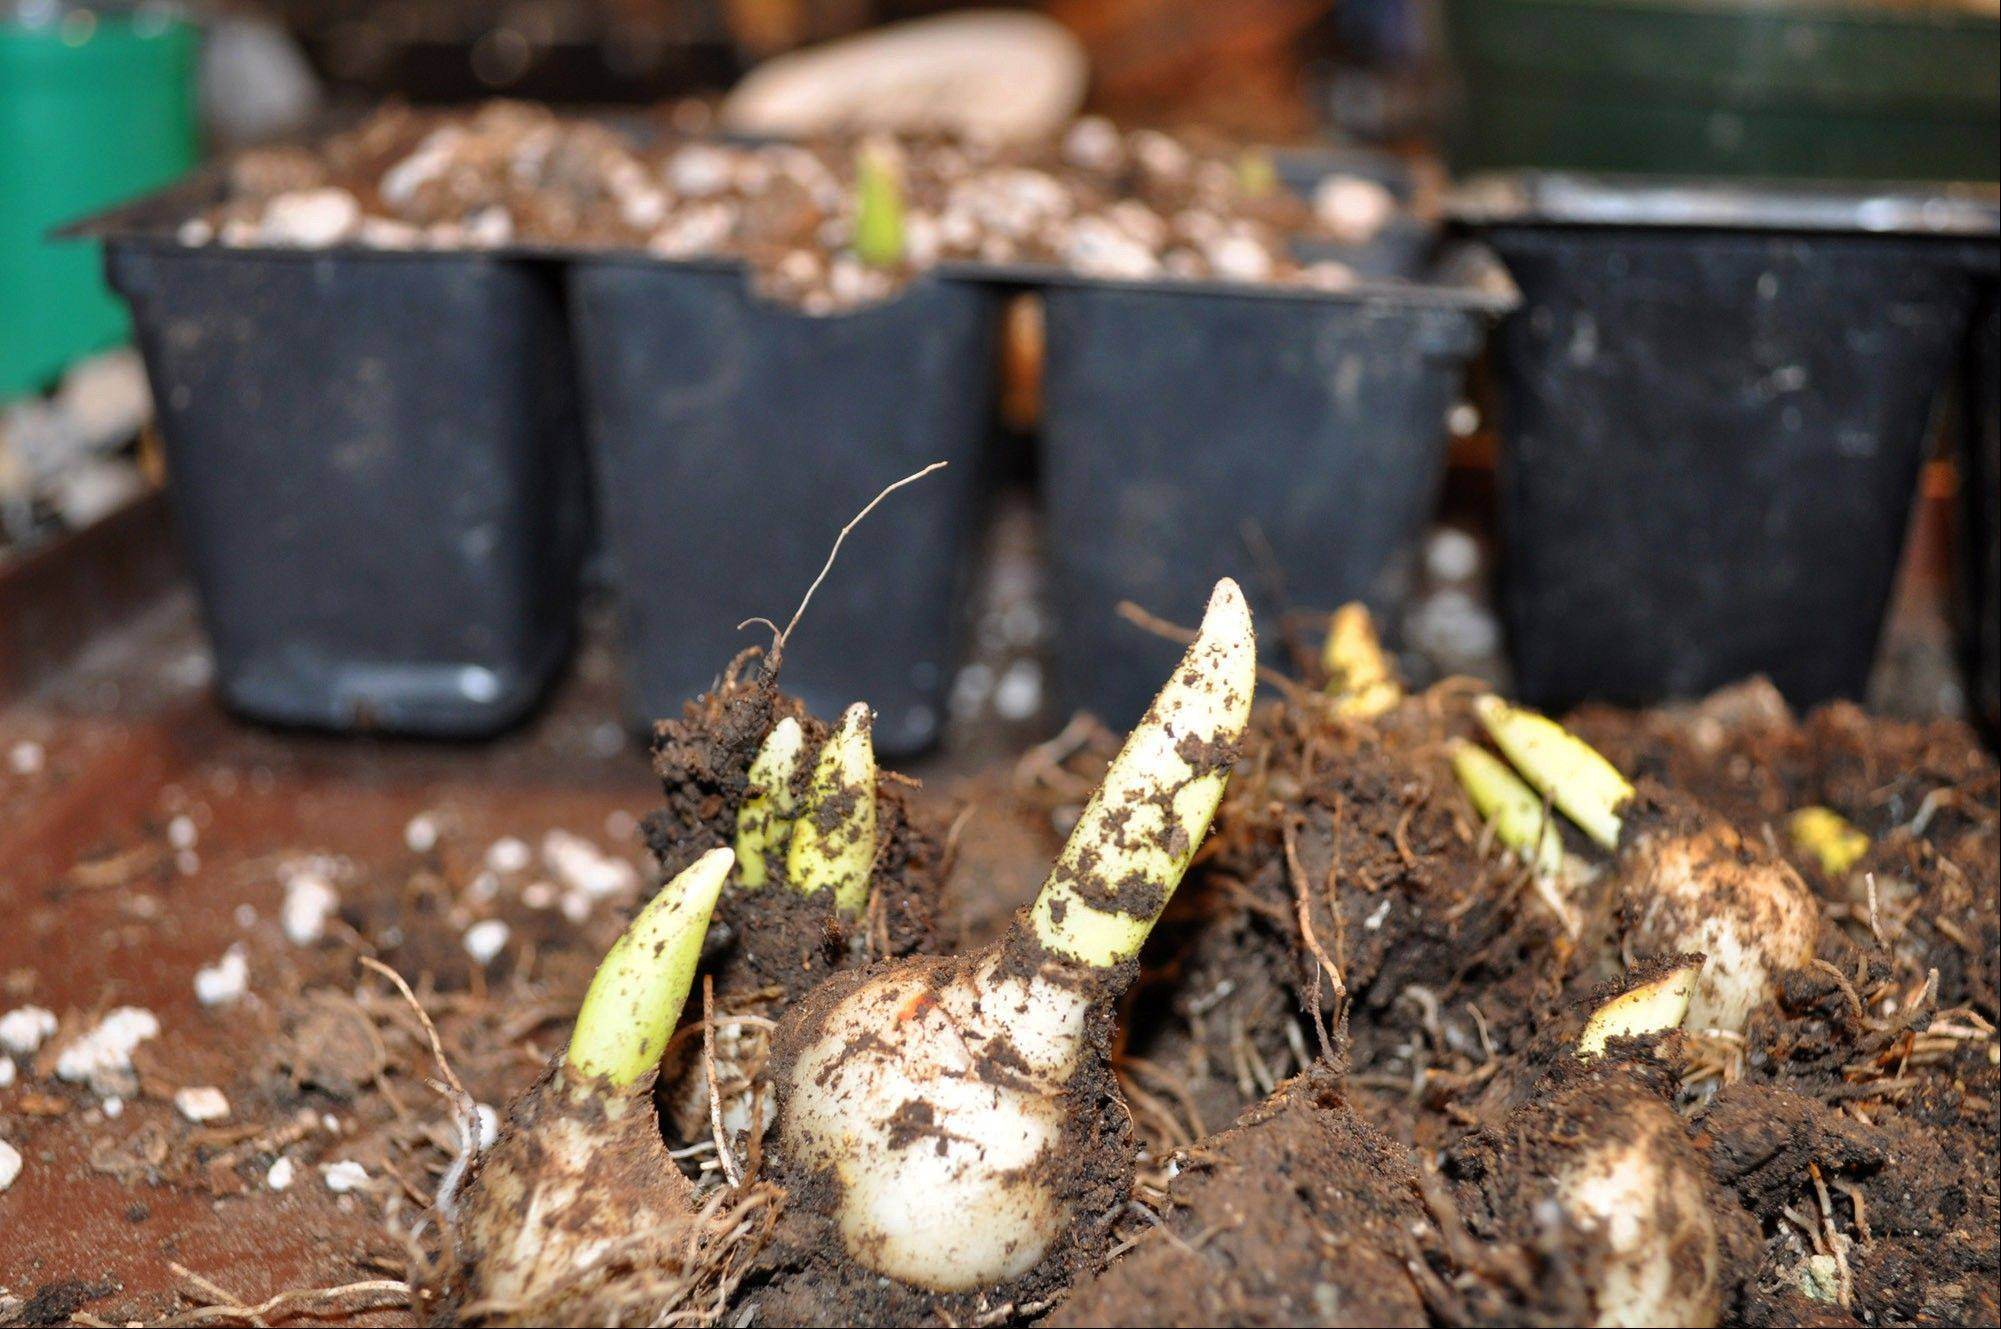 Little bulbs that form along stems below ground are called stem bulblets. Collect these stem bulblets, taking care to preserve any clinging roots as soon as the stems and leaves begin to whither.